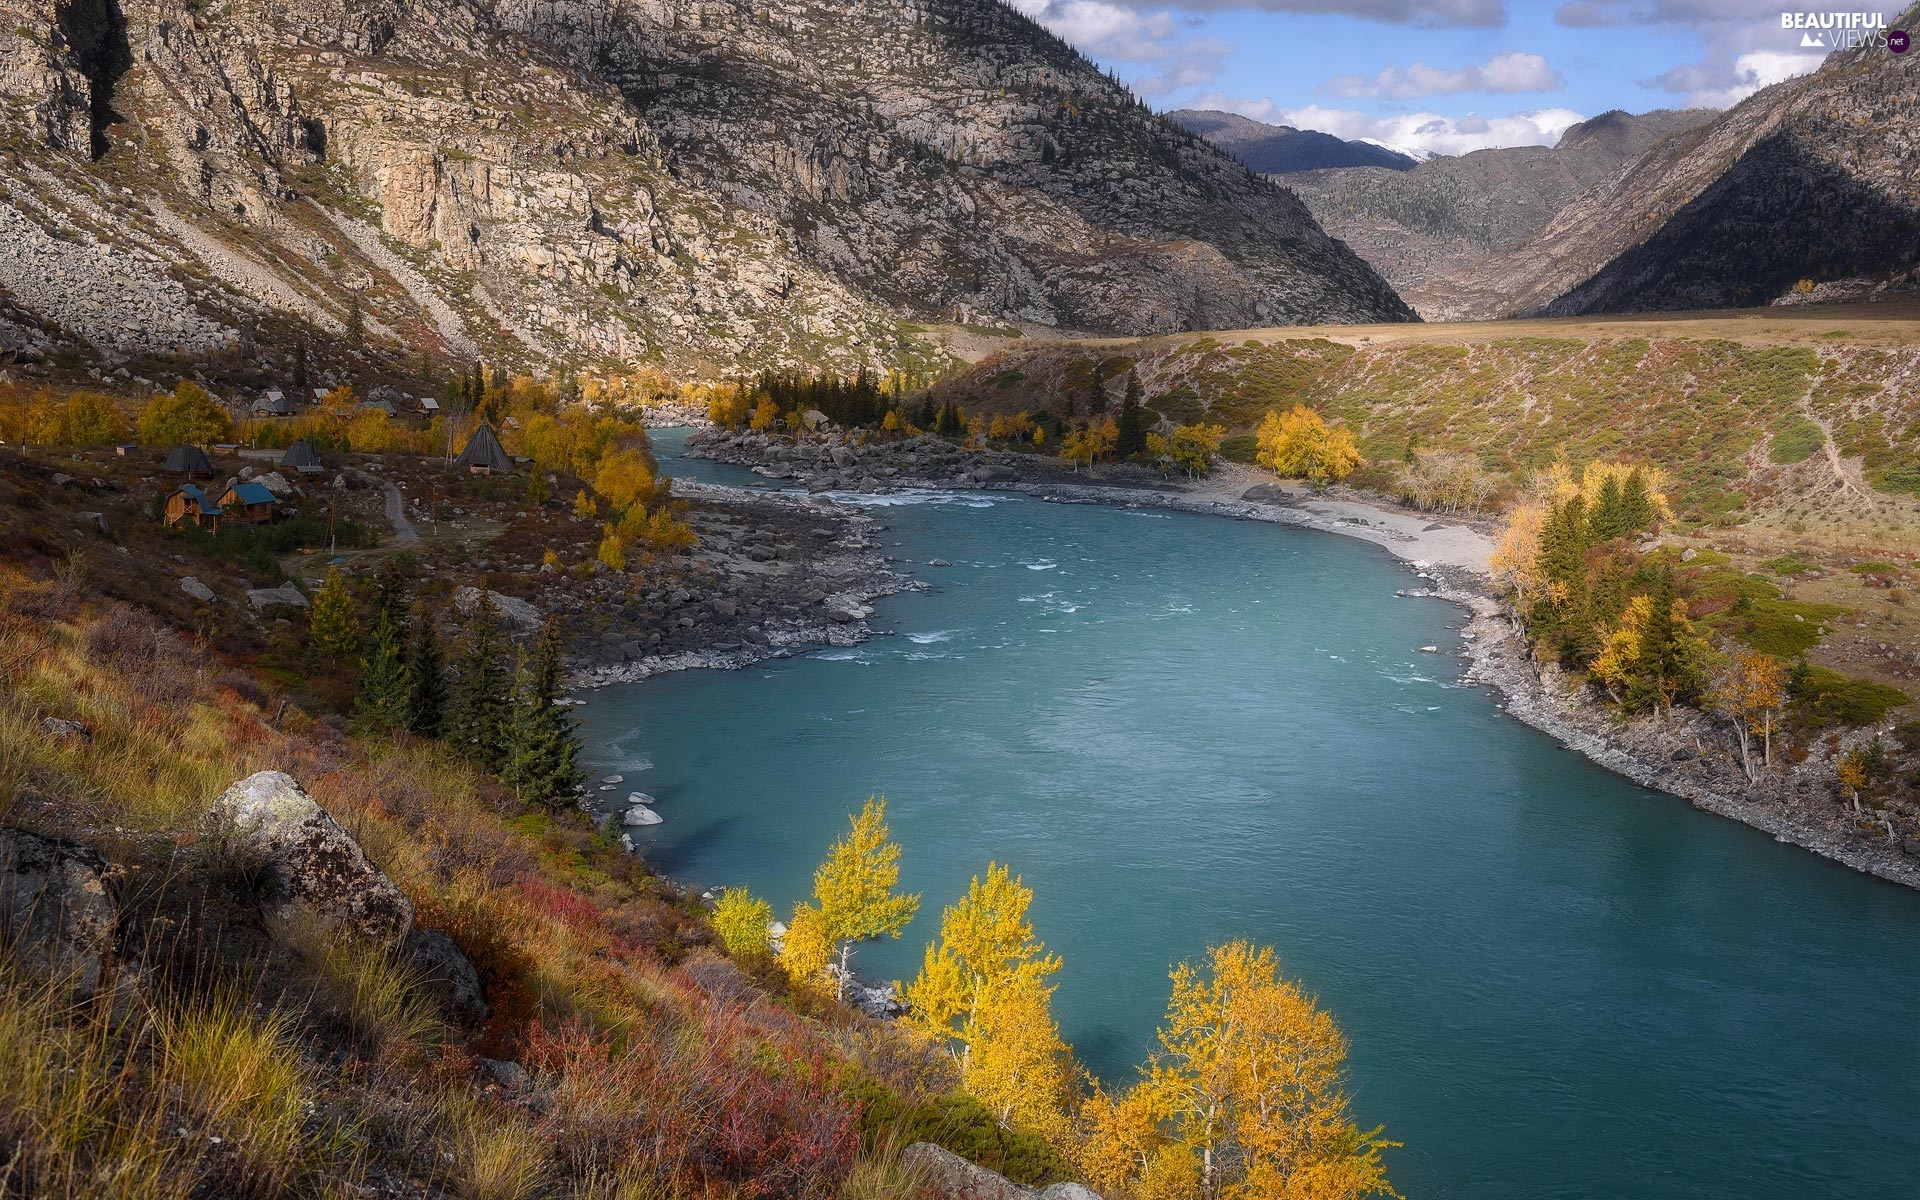 River, autumn, trees, viewes, Plants, Mountains